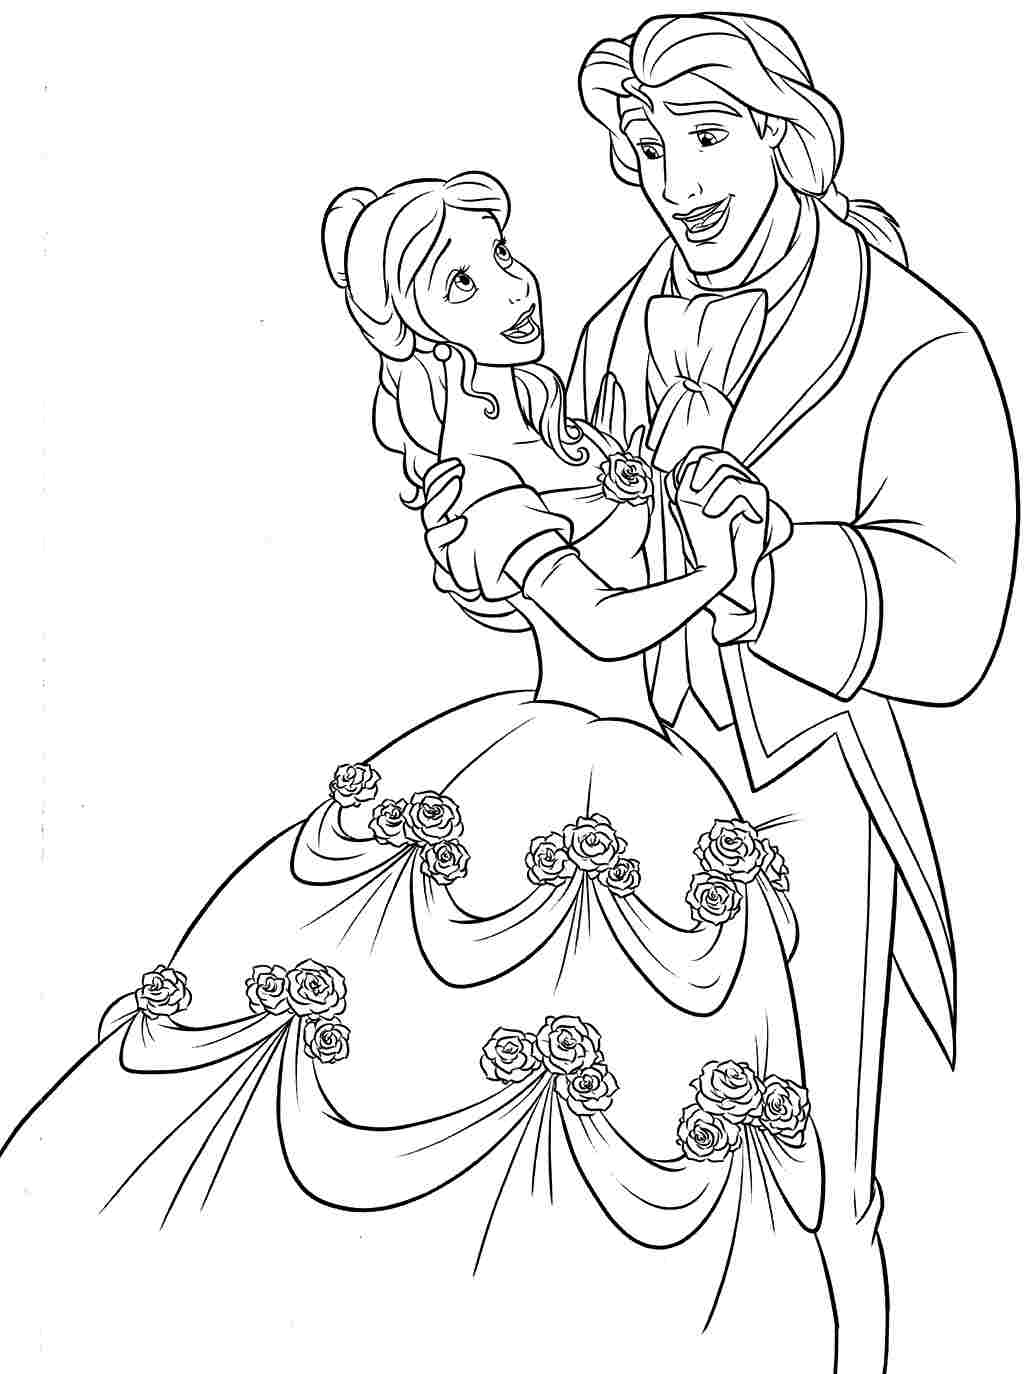 beauty and the beast colouring pages beauty and beast coloring page 14 coloringcolorcom the colouring beast and pages beauty